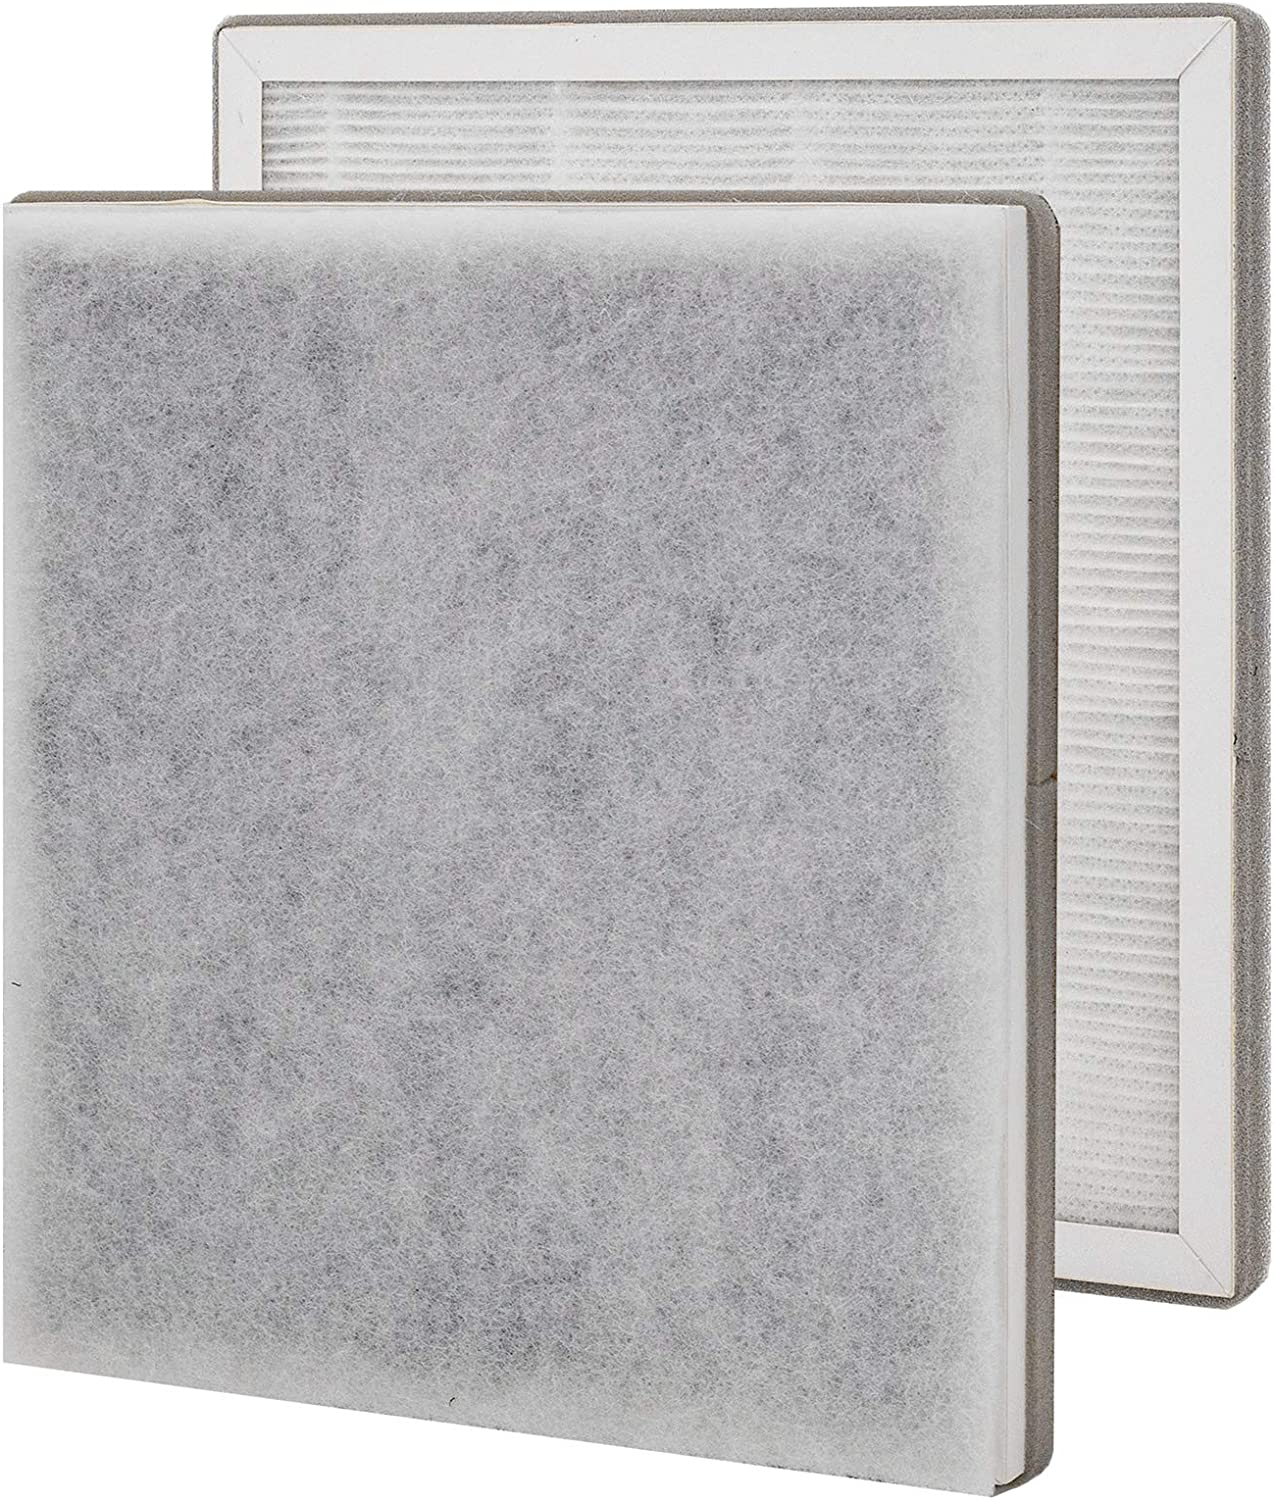 Lhari True HEPA Replacement Filter, Compatible with Pure Enrichment PureZone 3-in-1 Air Purifier, Part # PEAIRFIL, Pack of 2